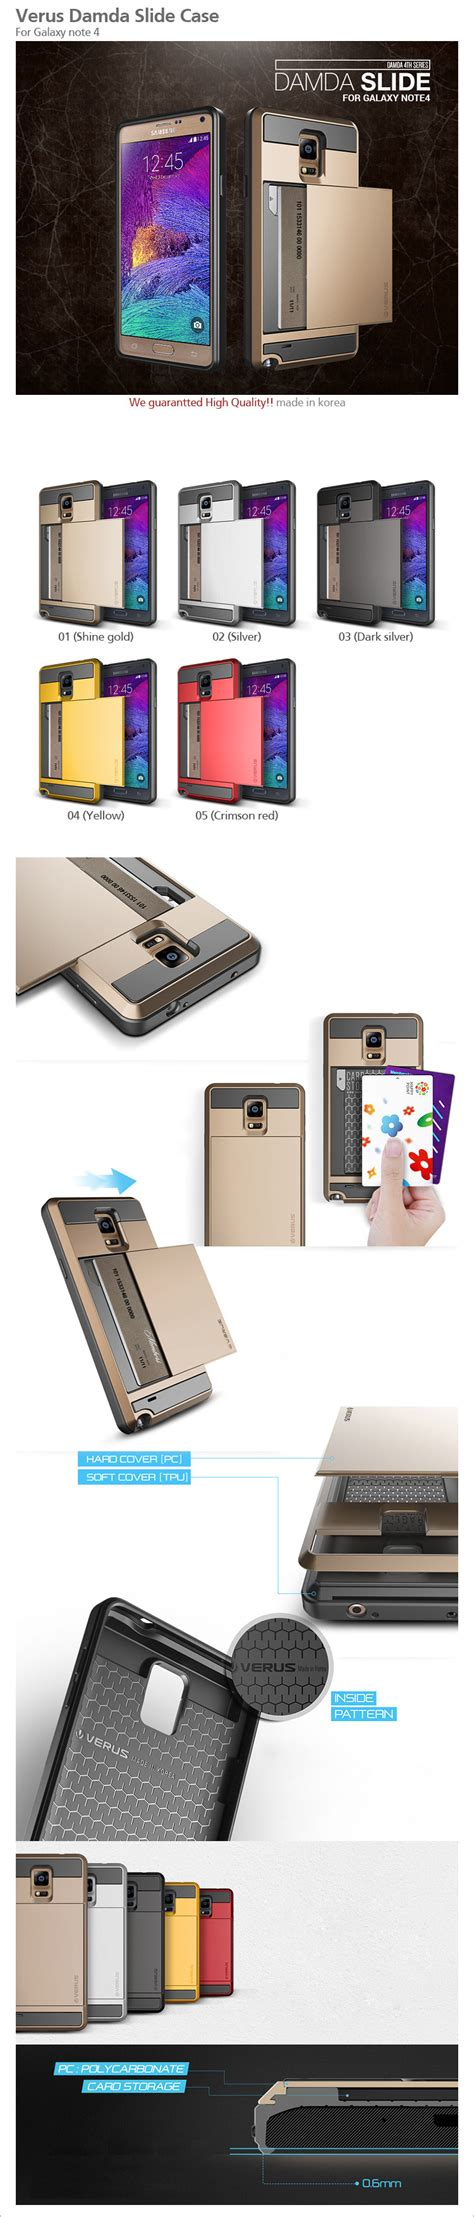 Verus Damda Slide Iphone 5 5s verus damda slide galaxy note 4 card pocket 5